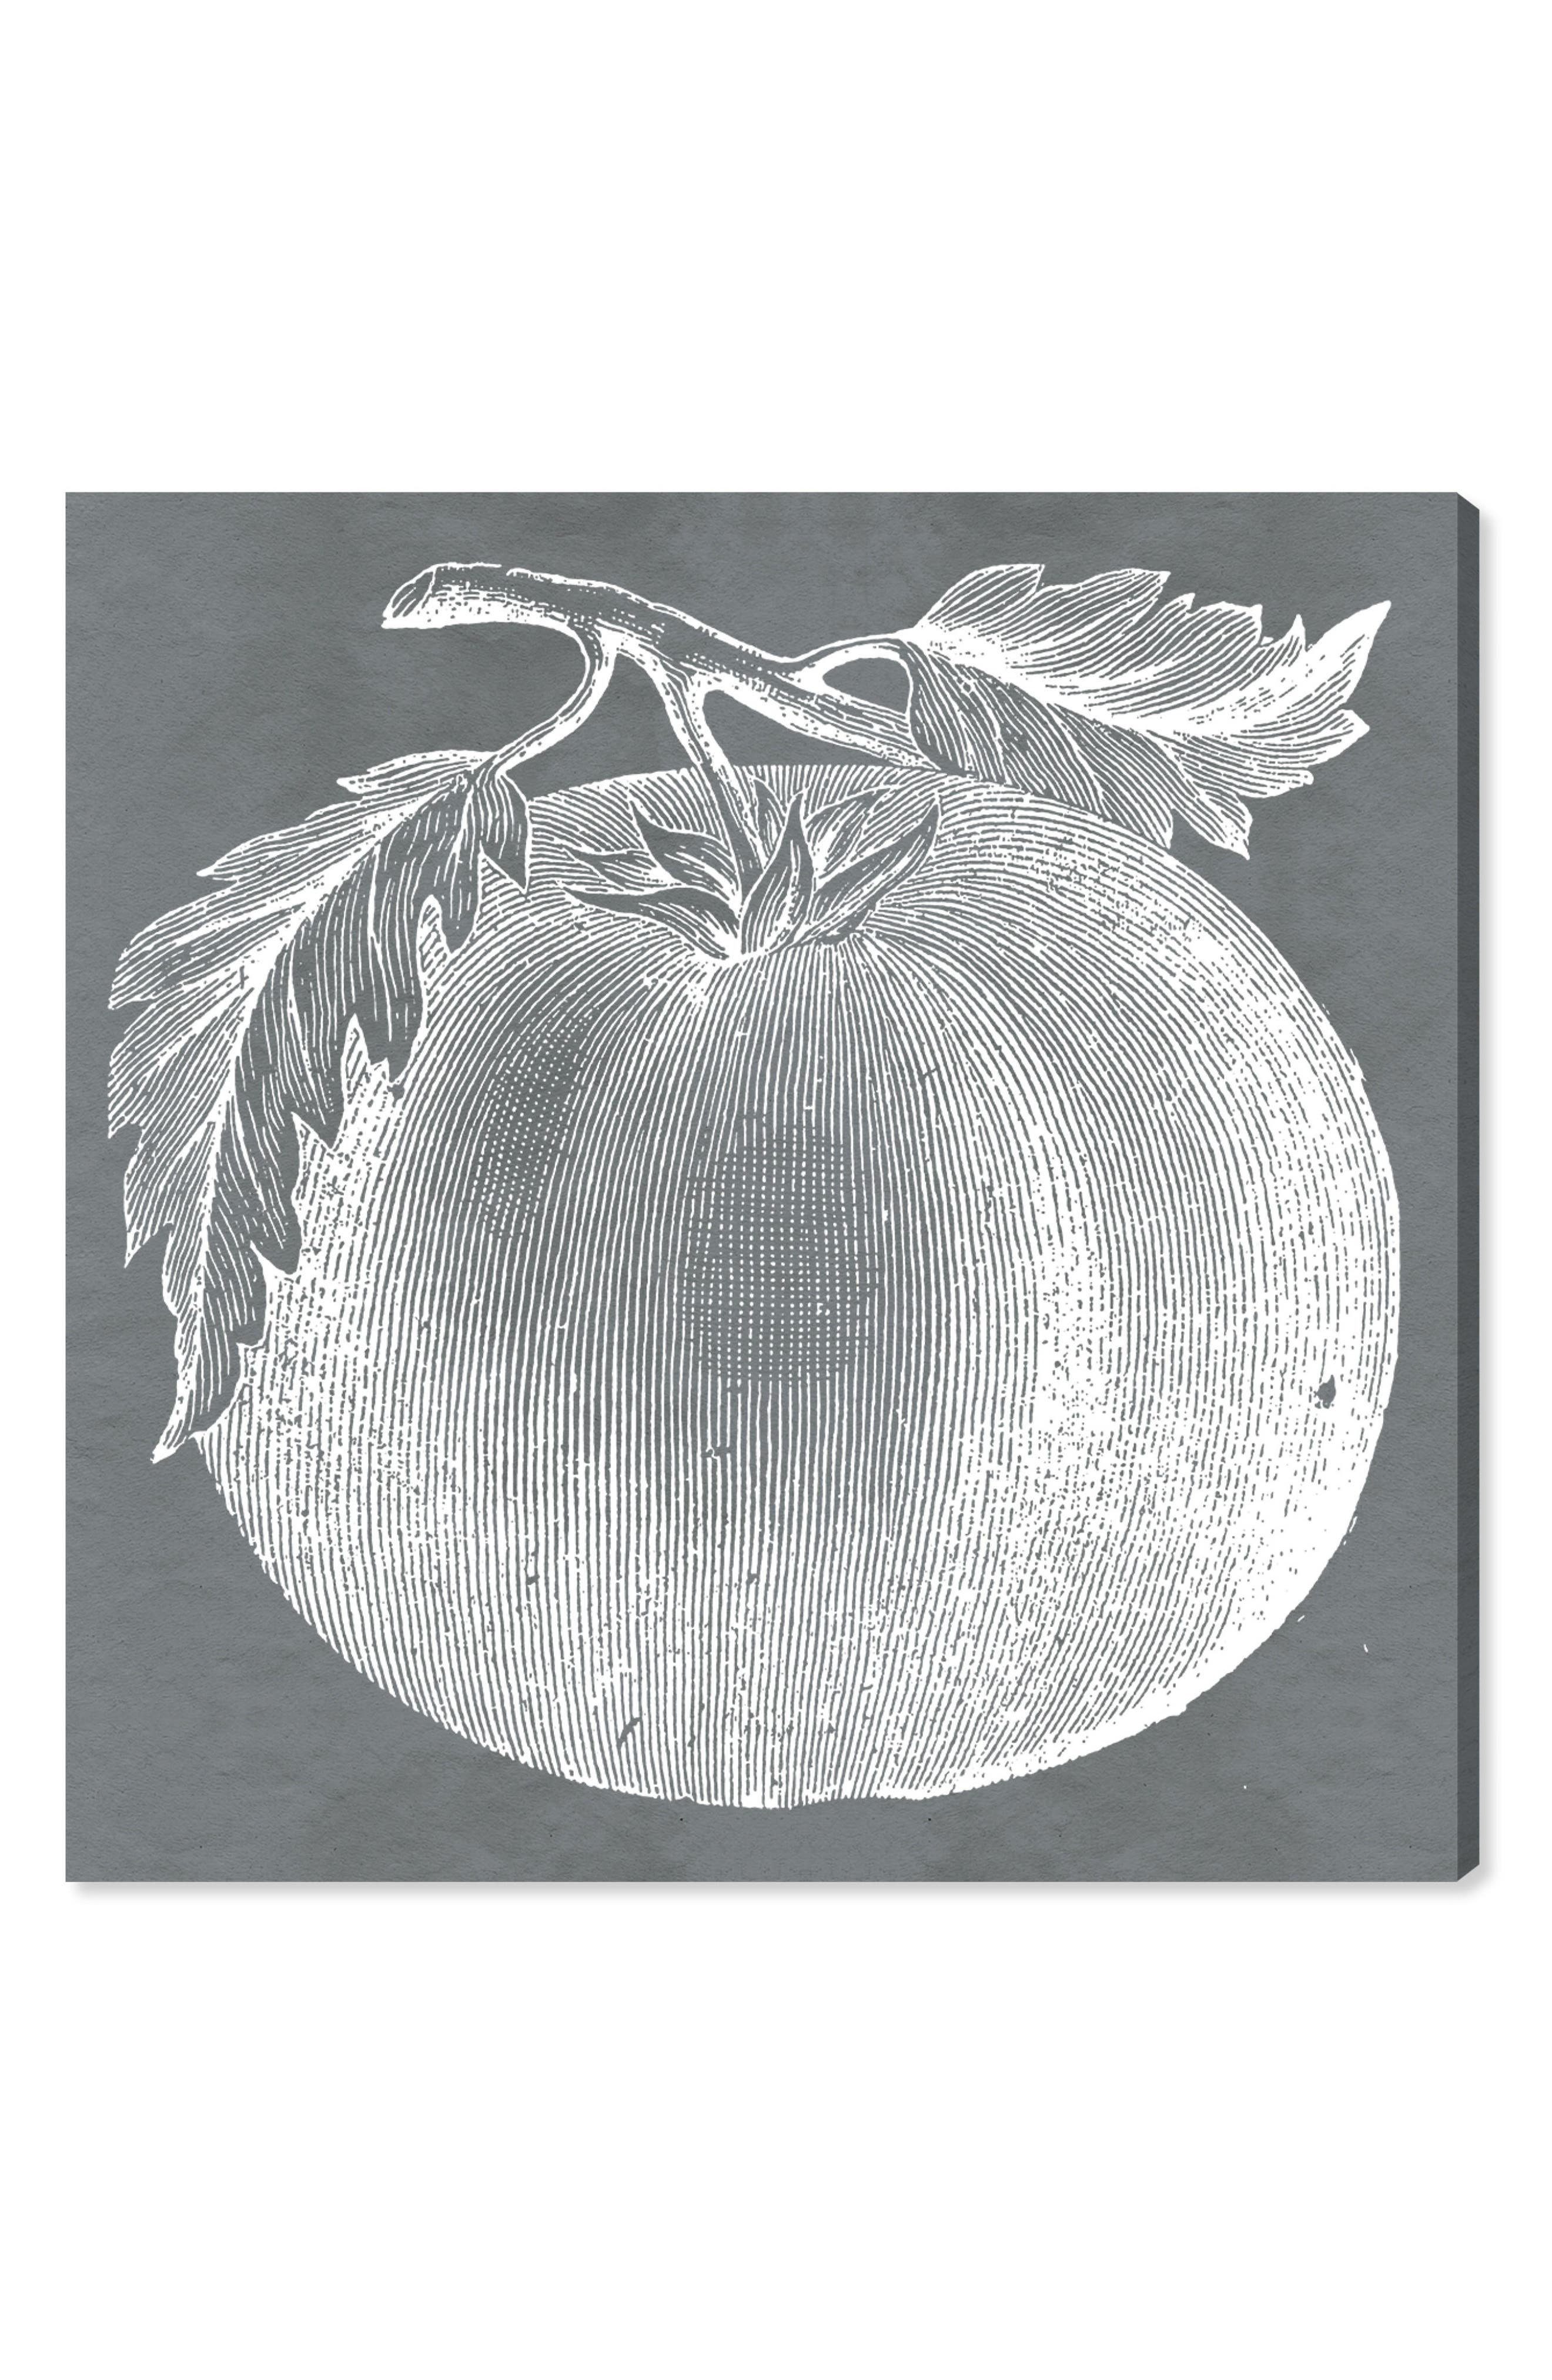 Main Image - Oliver Gal Tomato Canvas Wall Art